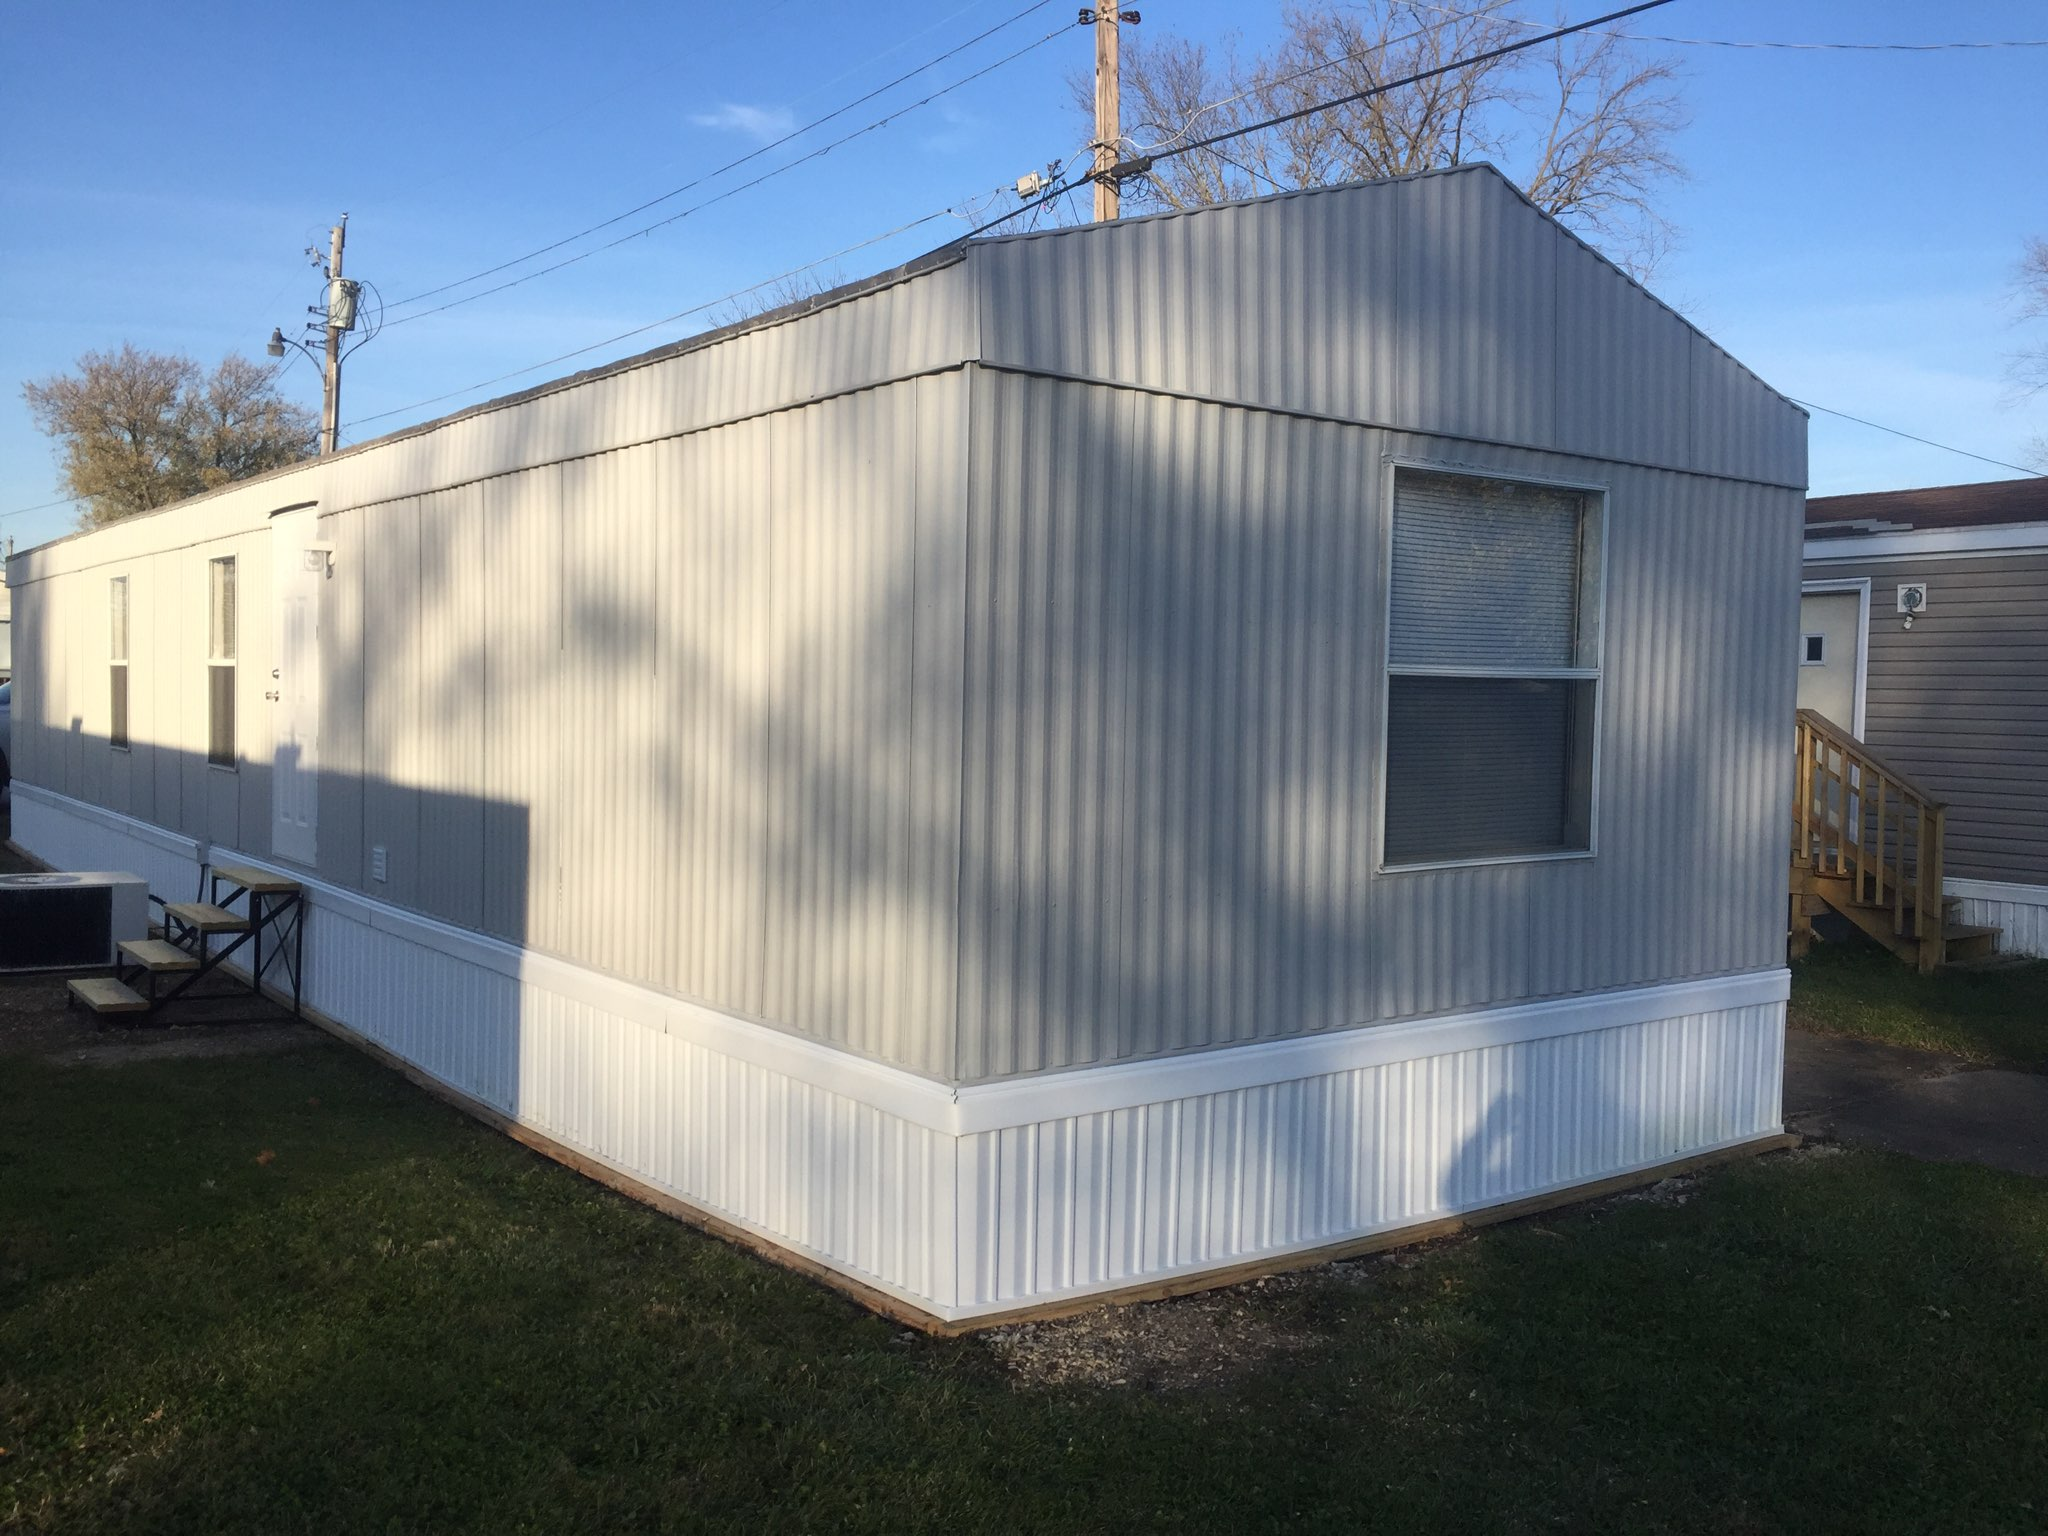 lot 11 mobile home villa 1994 fairmont 14 64 2 bedroom 1 bath new paint inside and out new. Black Bedroom Furniture Sets. Home Design Ideas